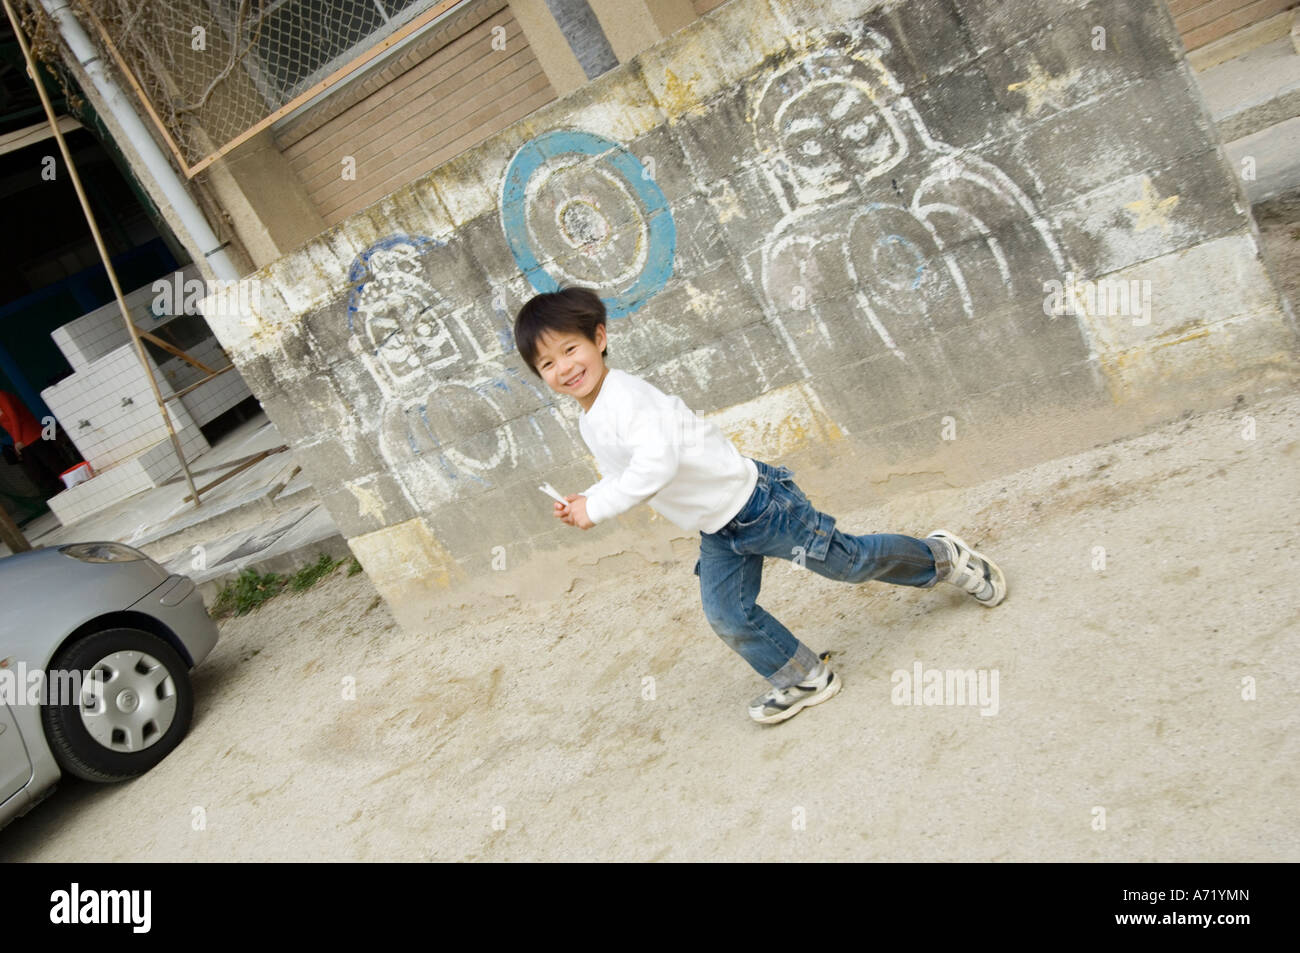 Boy playing in schoolyard - Stock Image